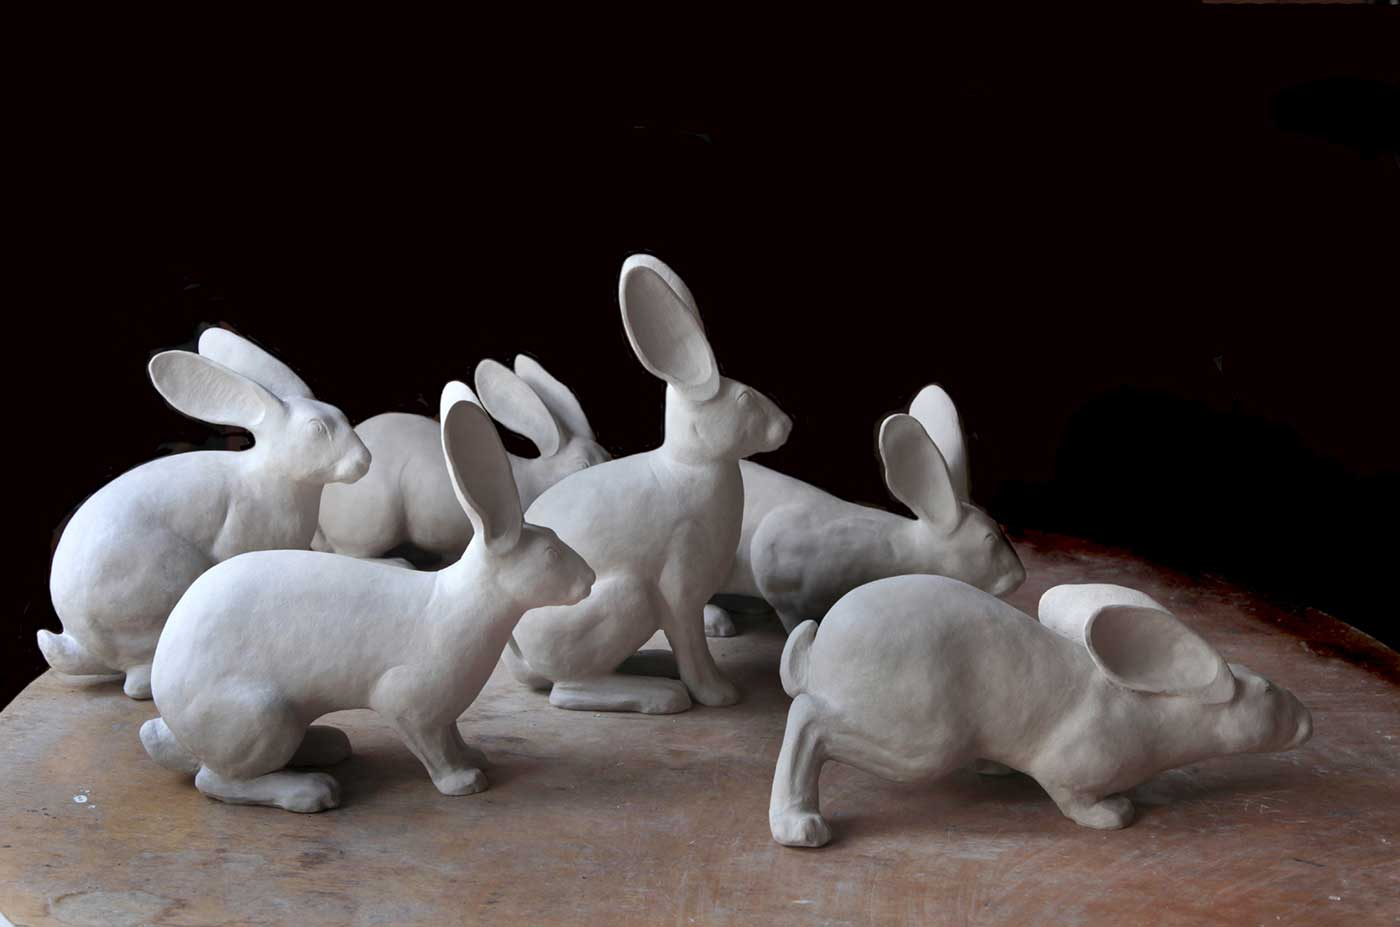 Six matt white ceramic figures modelled on the European wild rabbit.